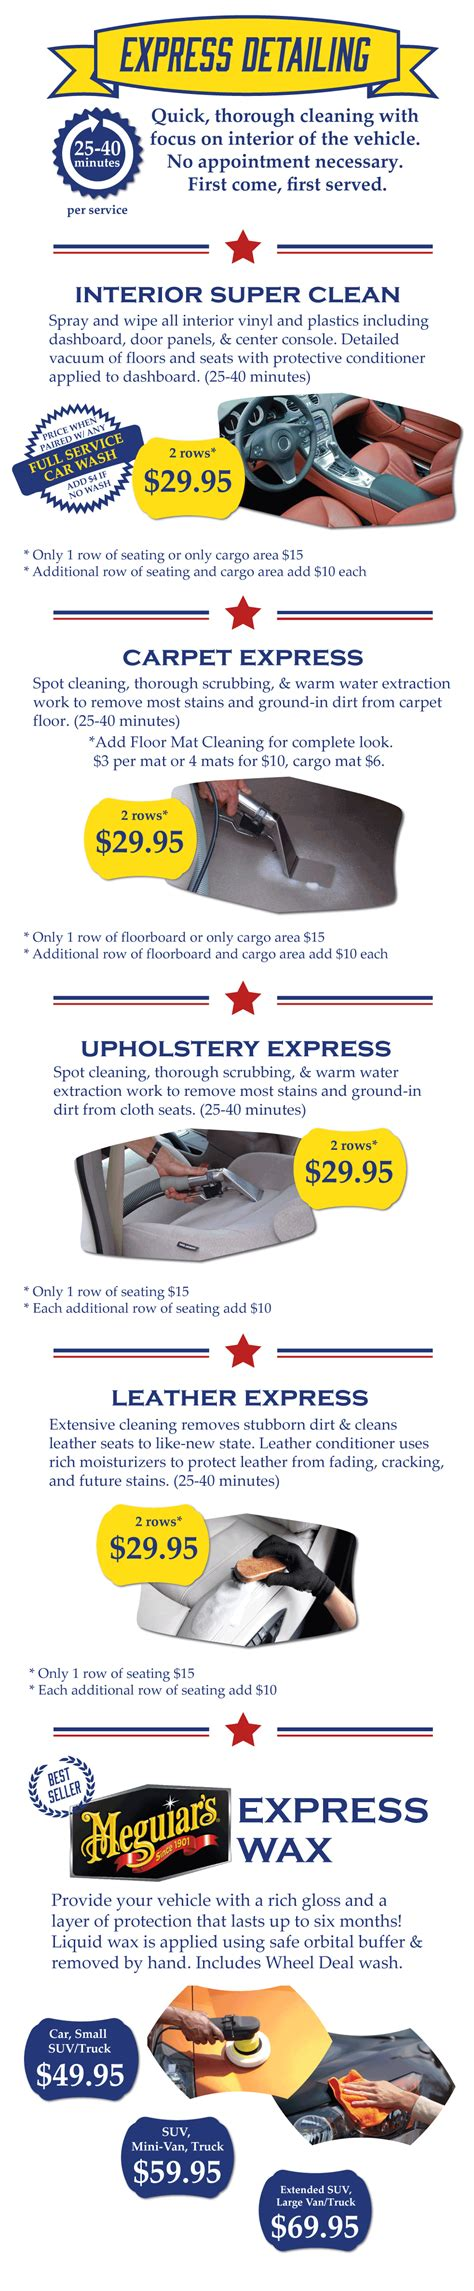 Check Family Express Gift Card Balance - express detail services